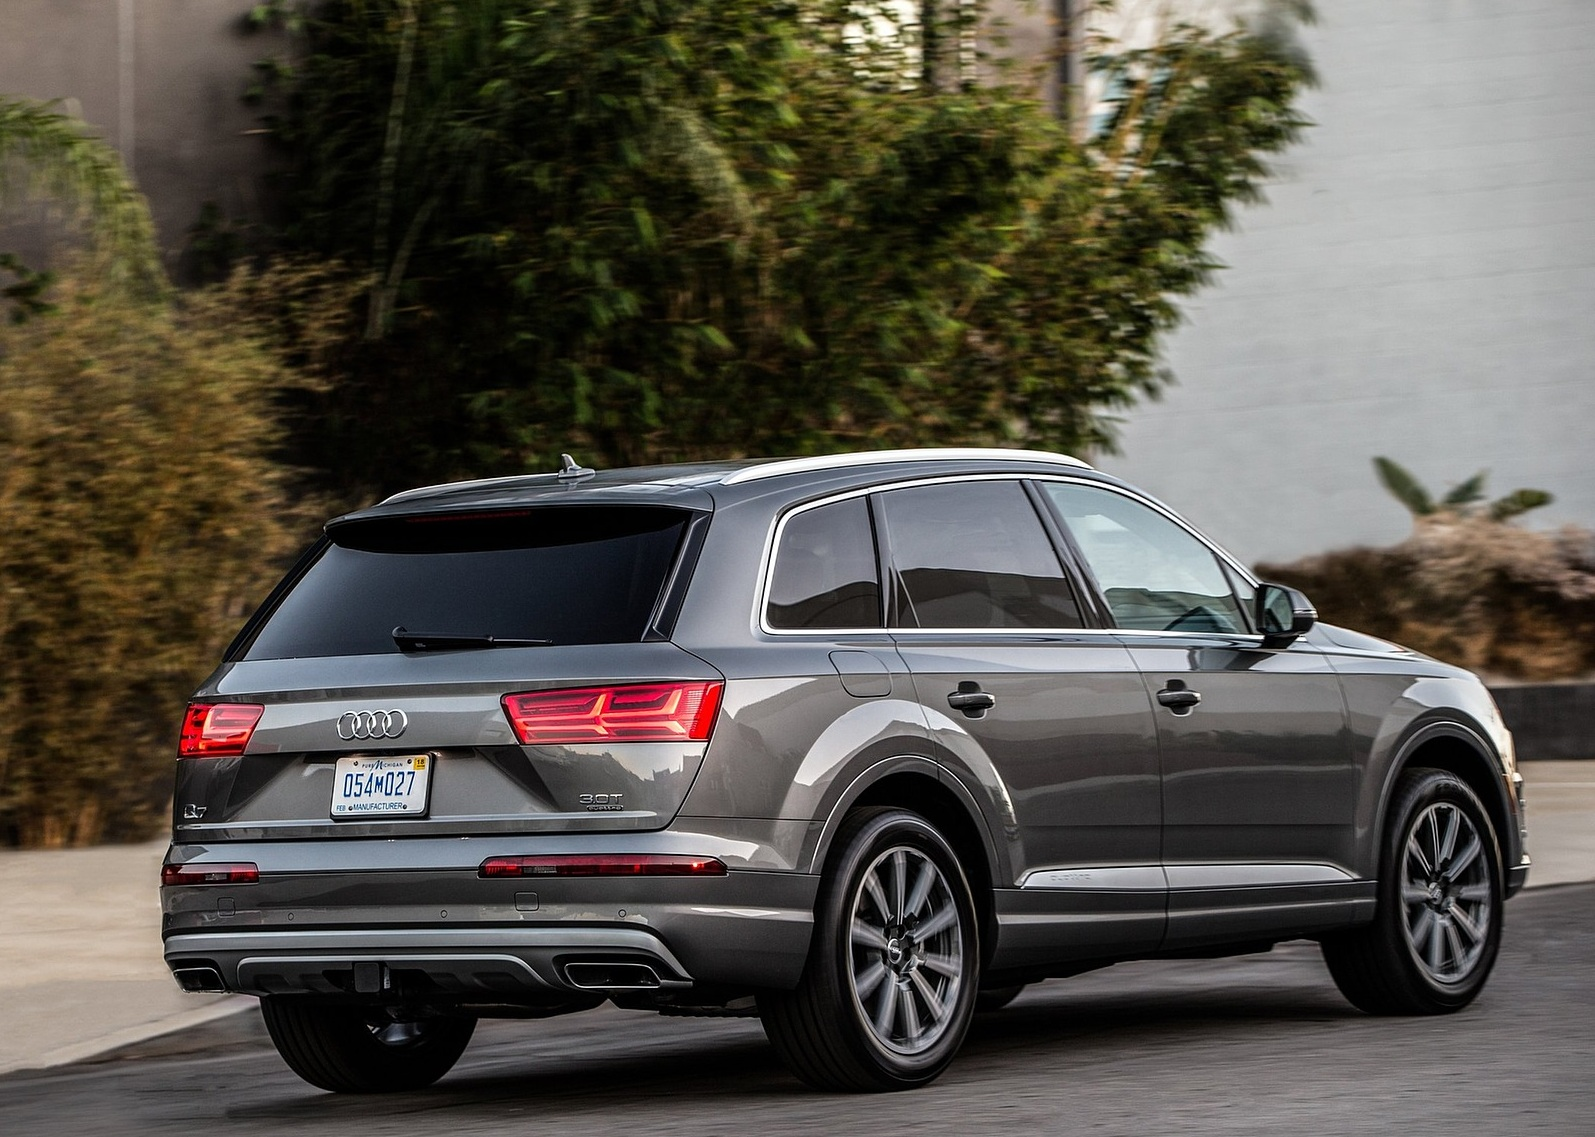 2017 Audi Q7 SUV Rear View